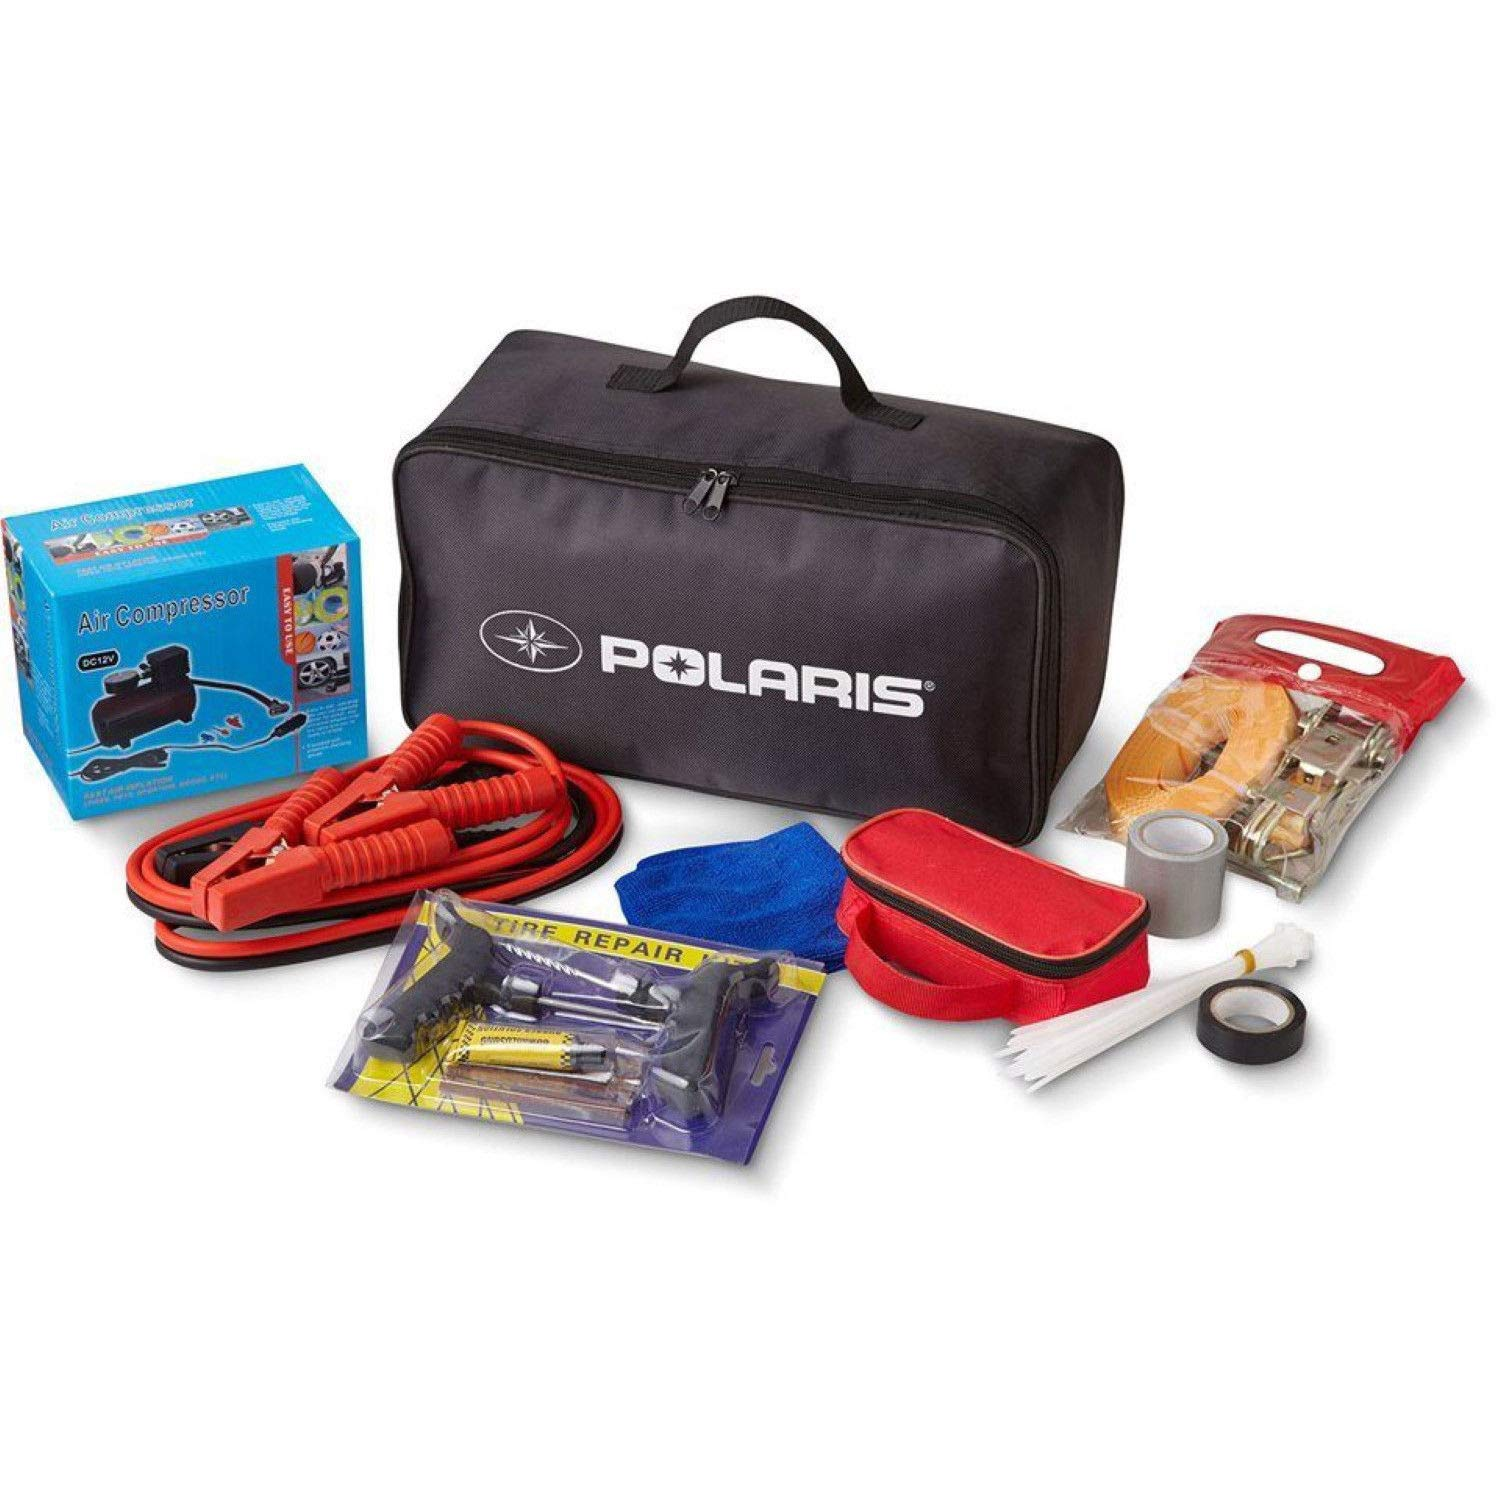 POLARIS RZR RANGER SPORTSMAN ACE RIDE & REPAIR ESSENTIALS KIT BY POLARIS